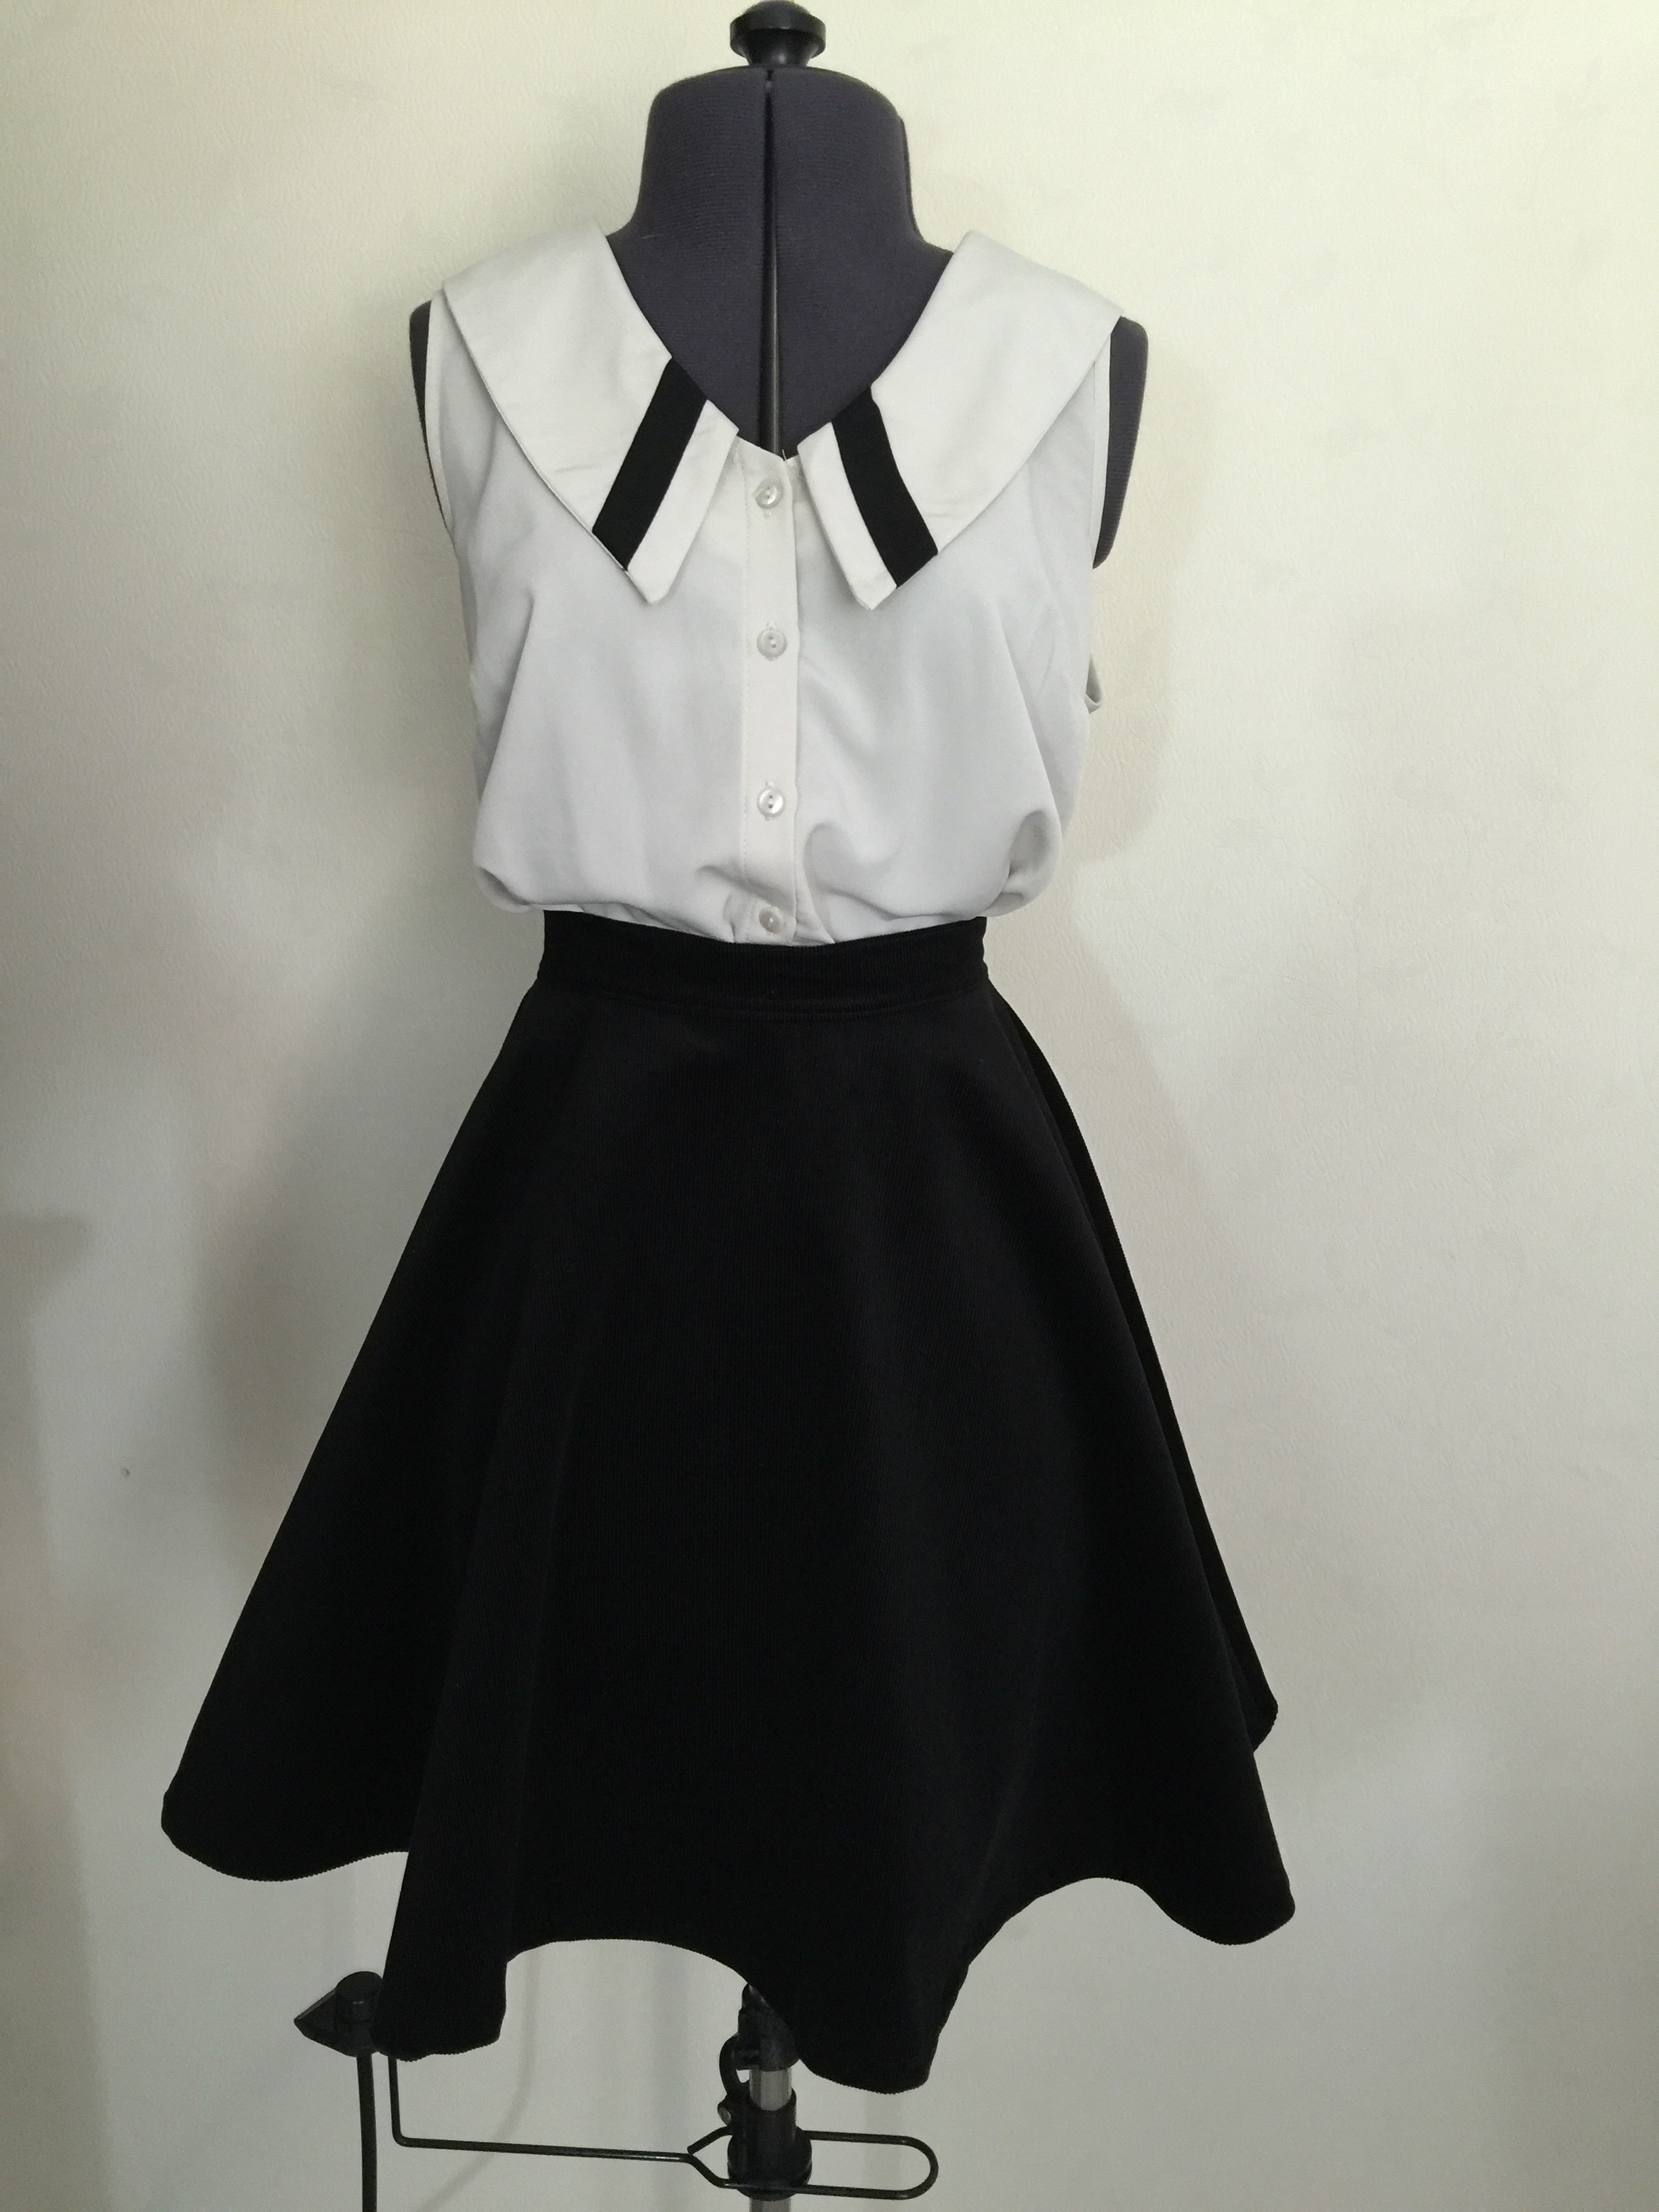 Easy Skater Skirt Sewing Pattern: Dare to diy in english project ...